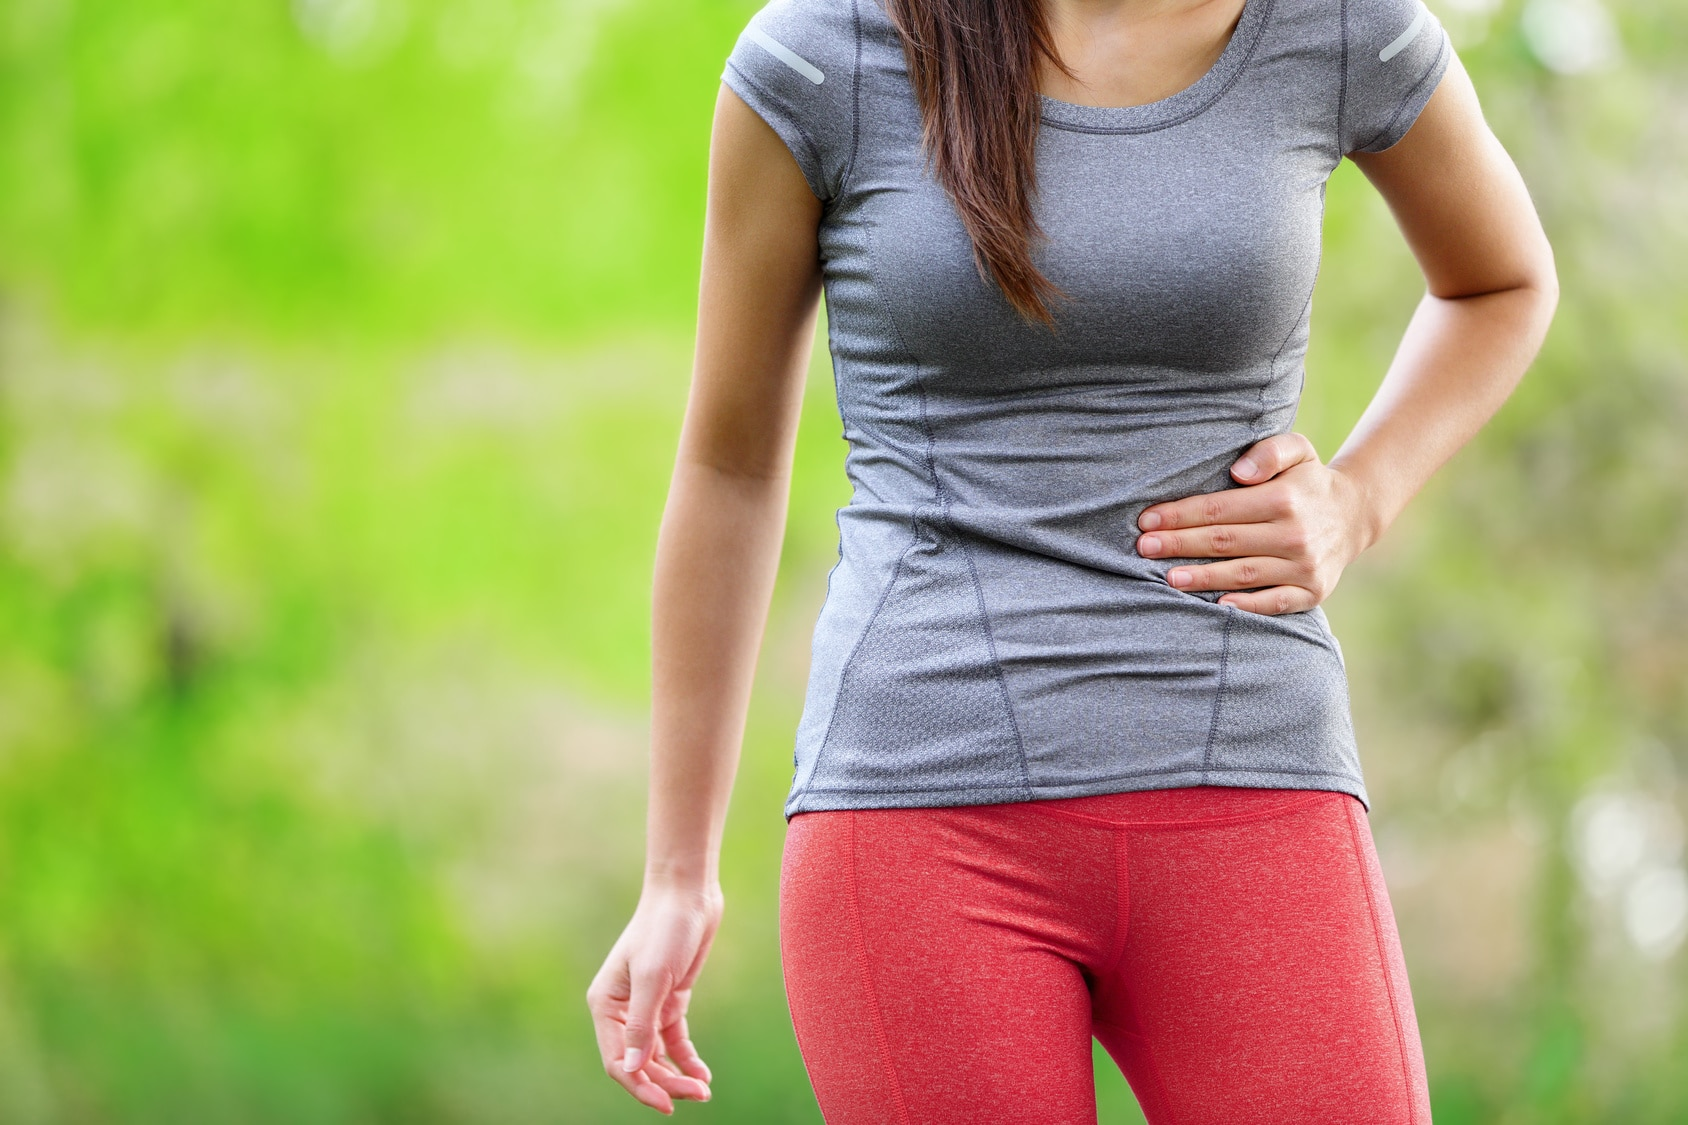 runner suffering from side stitch